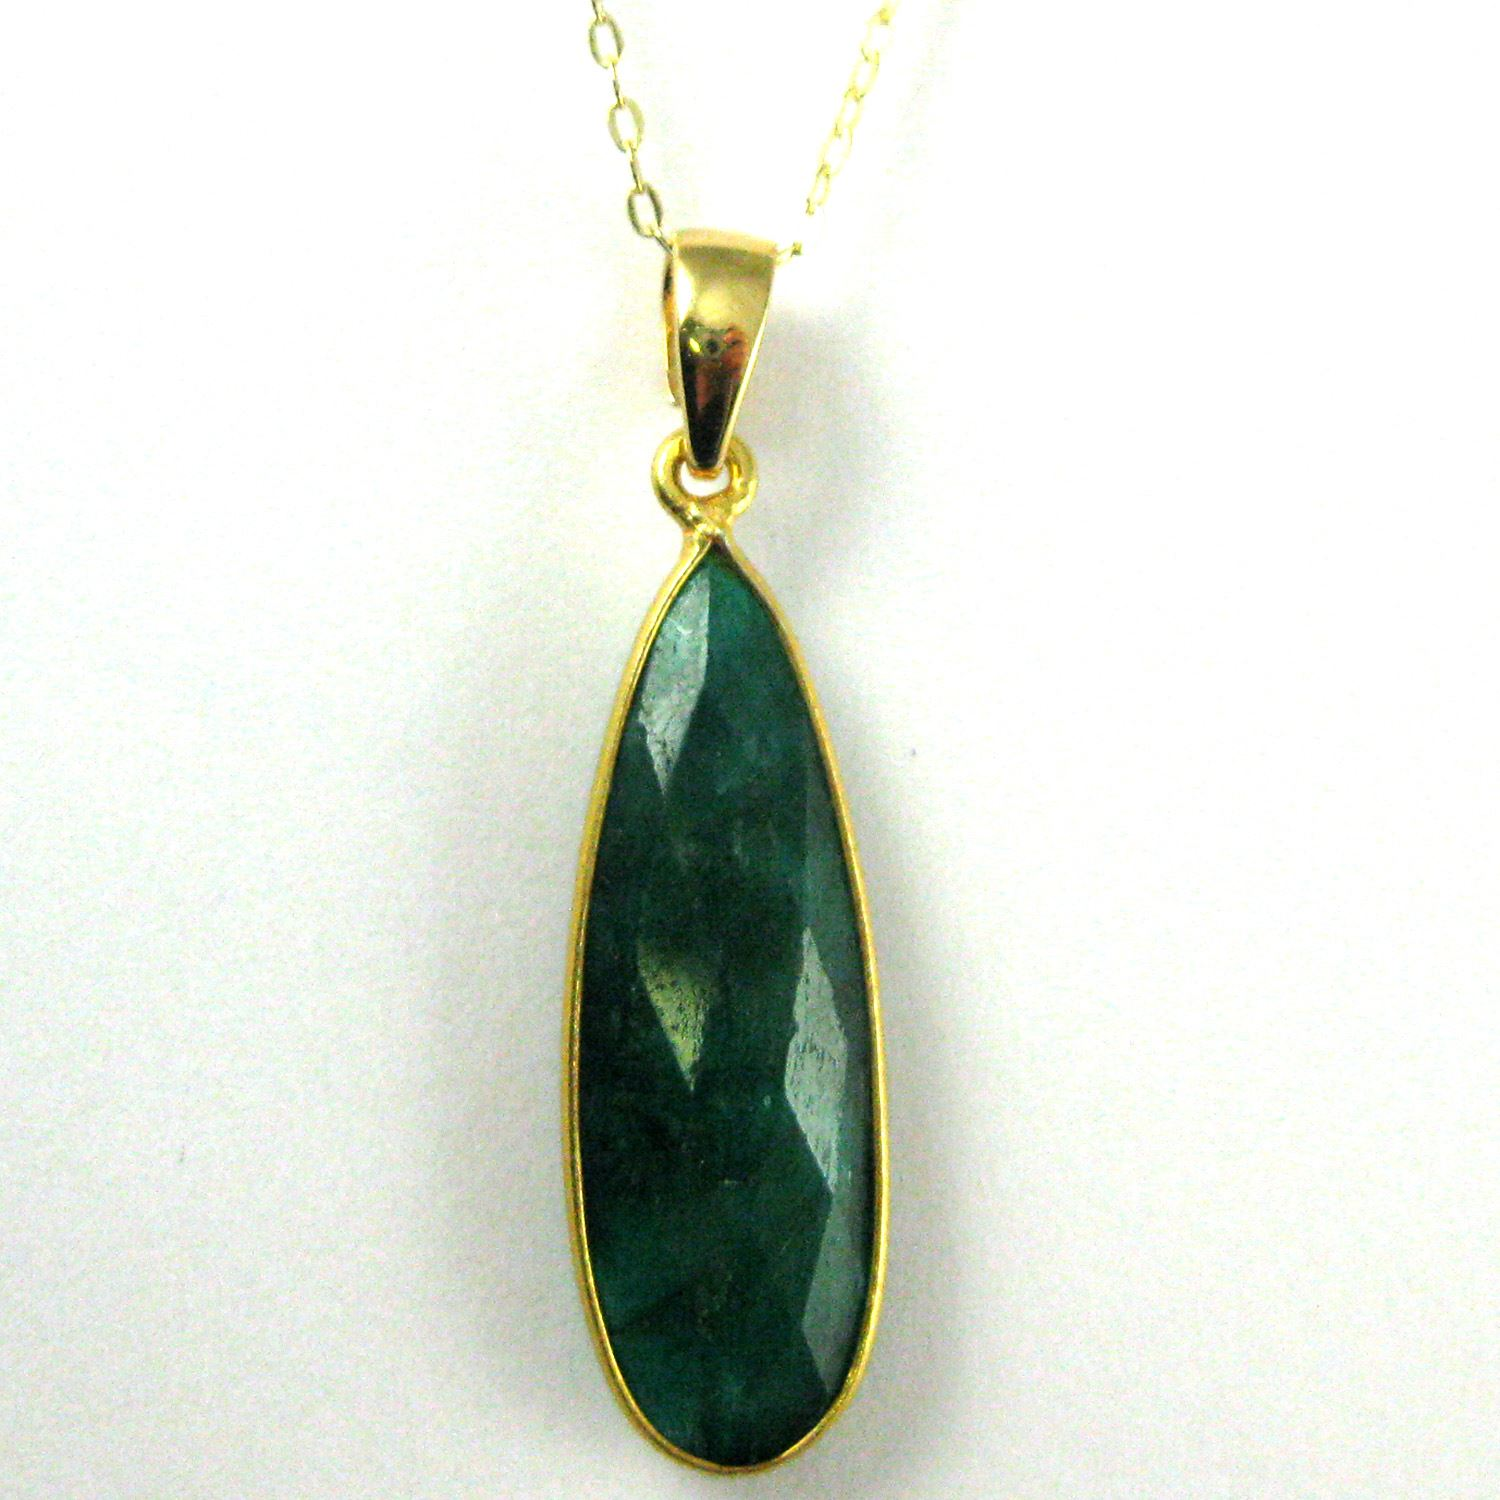 Bezel Gemstone Pendant with Bail - Gold plated Sterling Silver Elongated Teardrpo Gem Pendant - Ready for Necklace - 40mm - Emerald Dyed